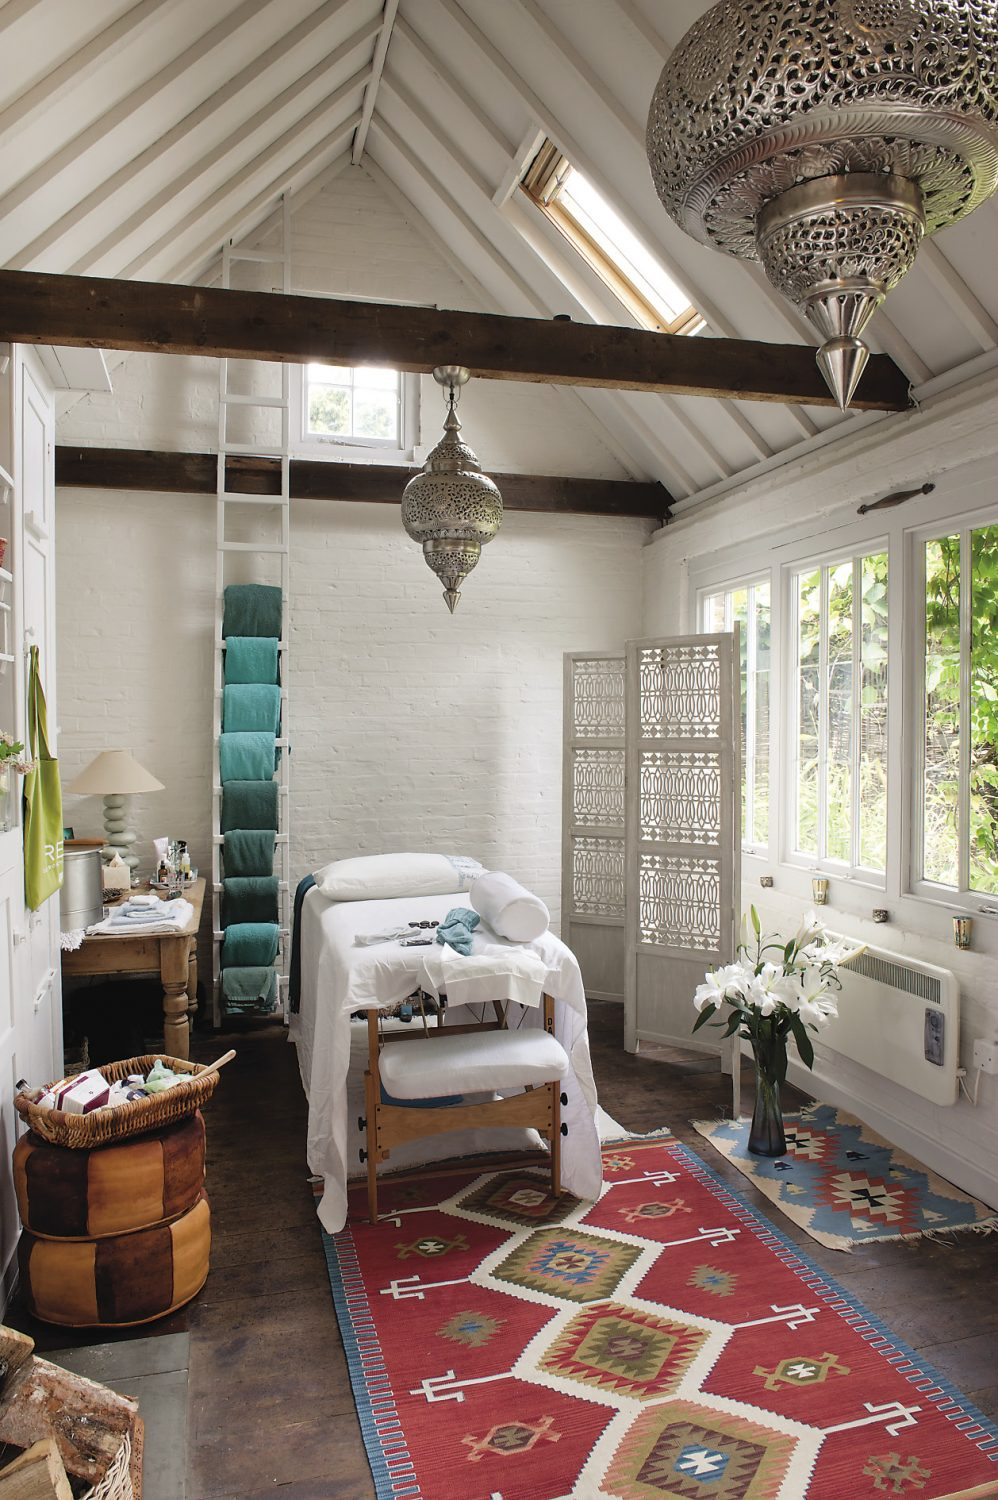 """Inside, Ann's Therapy Shed is painted a gentle white and from the beams crossing its high ceiling hang two silver coloured Moroccan metal lanterns. There is a colourful kilim on the floor. """"That's from Hoopers in Tunbridge Wells"""" says Ann. """"I have cotton kilims in here in the summer and woollen dhurries in the colder months. The wooden floor is used for yoga but the whole room is beautifully warm when we use the wood-burning stove."""